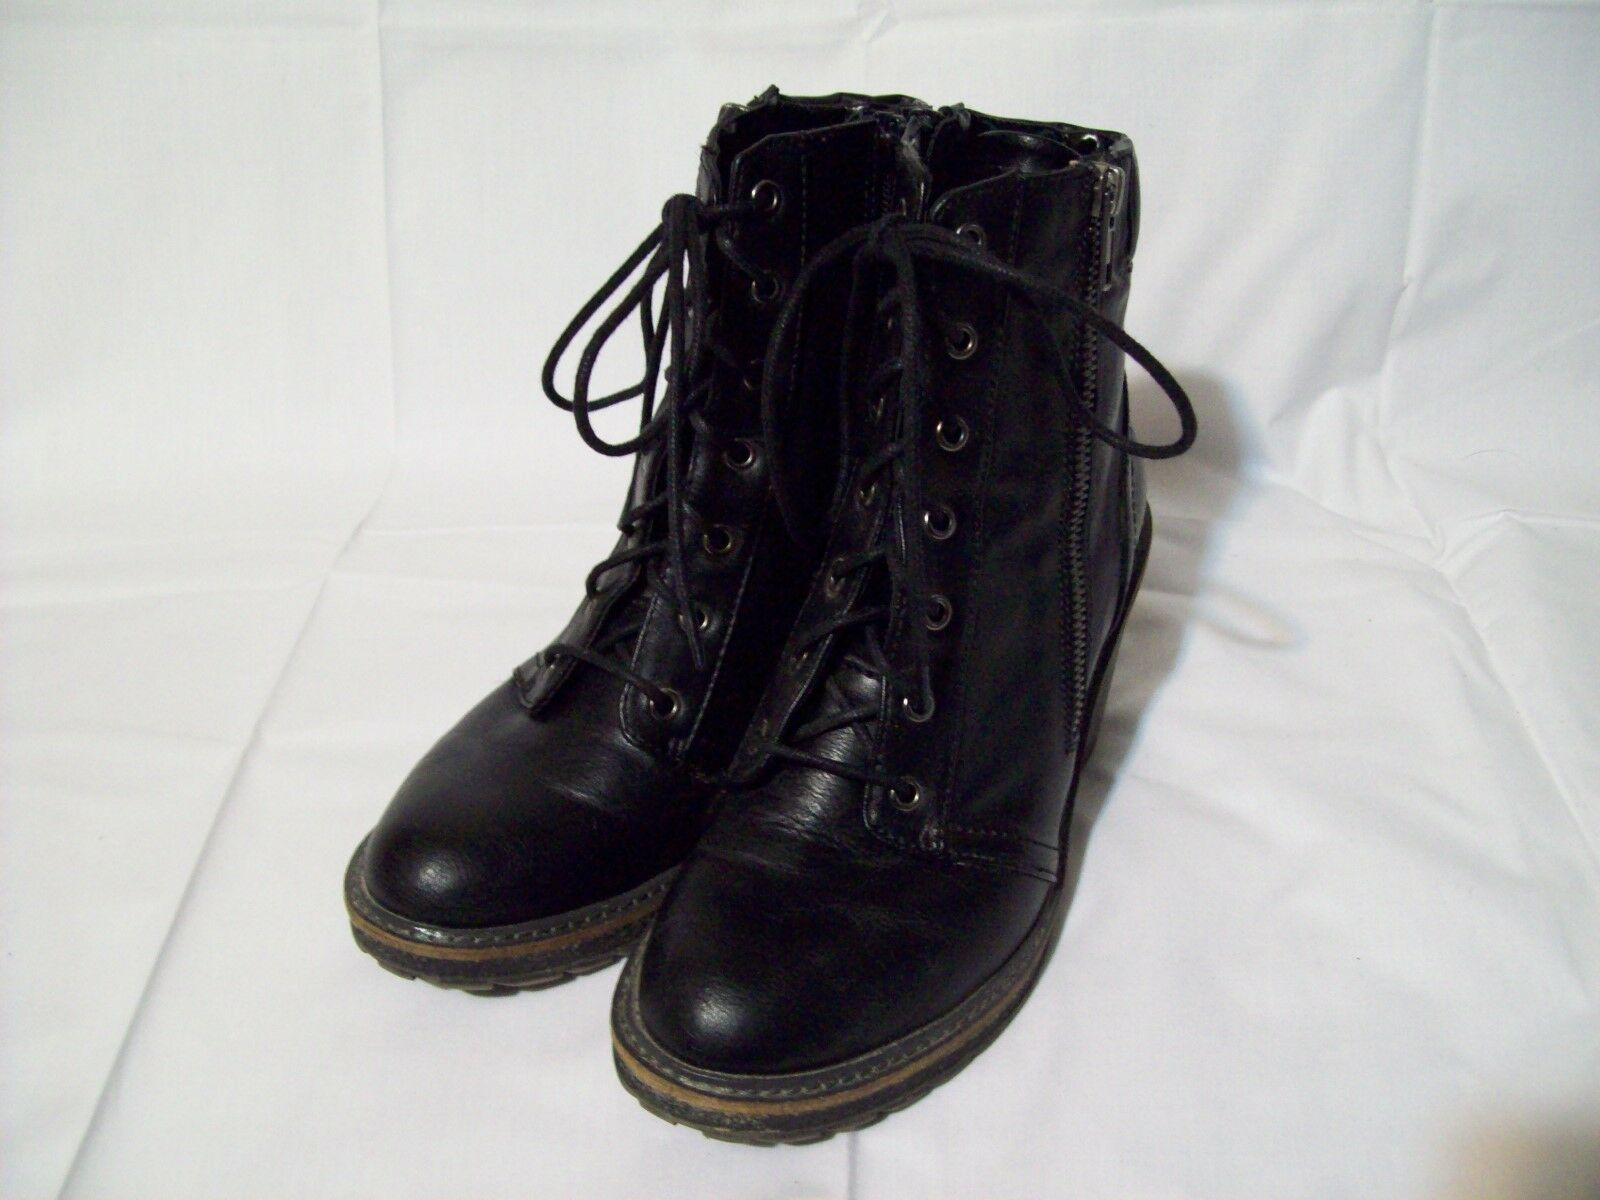 White Mountain Women's Frontier Black Boots Lace Up Zipper Size 7.5M